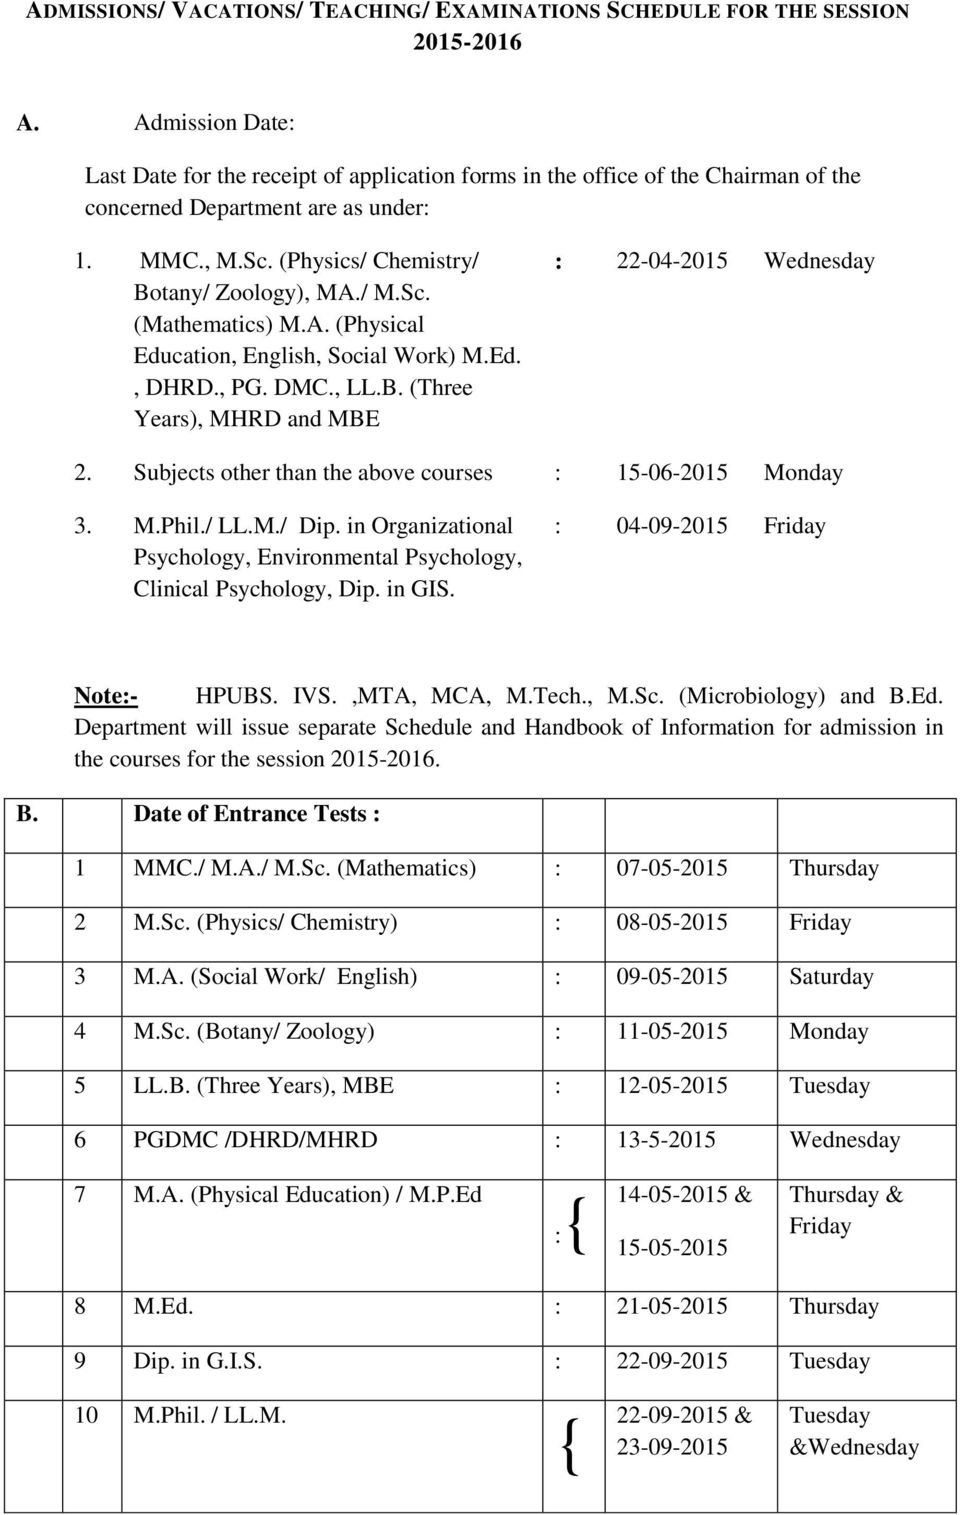 A. (Physical Education, English, Social Work) M.Ed., DHRD., PG. DMC., LL.B. (Three Years), MHRD and MBE : 22-04-2015 Wednesday 2. Subjects other than the above courses : 15-06-2015 Monday 3. M.Phil.